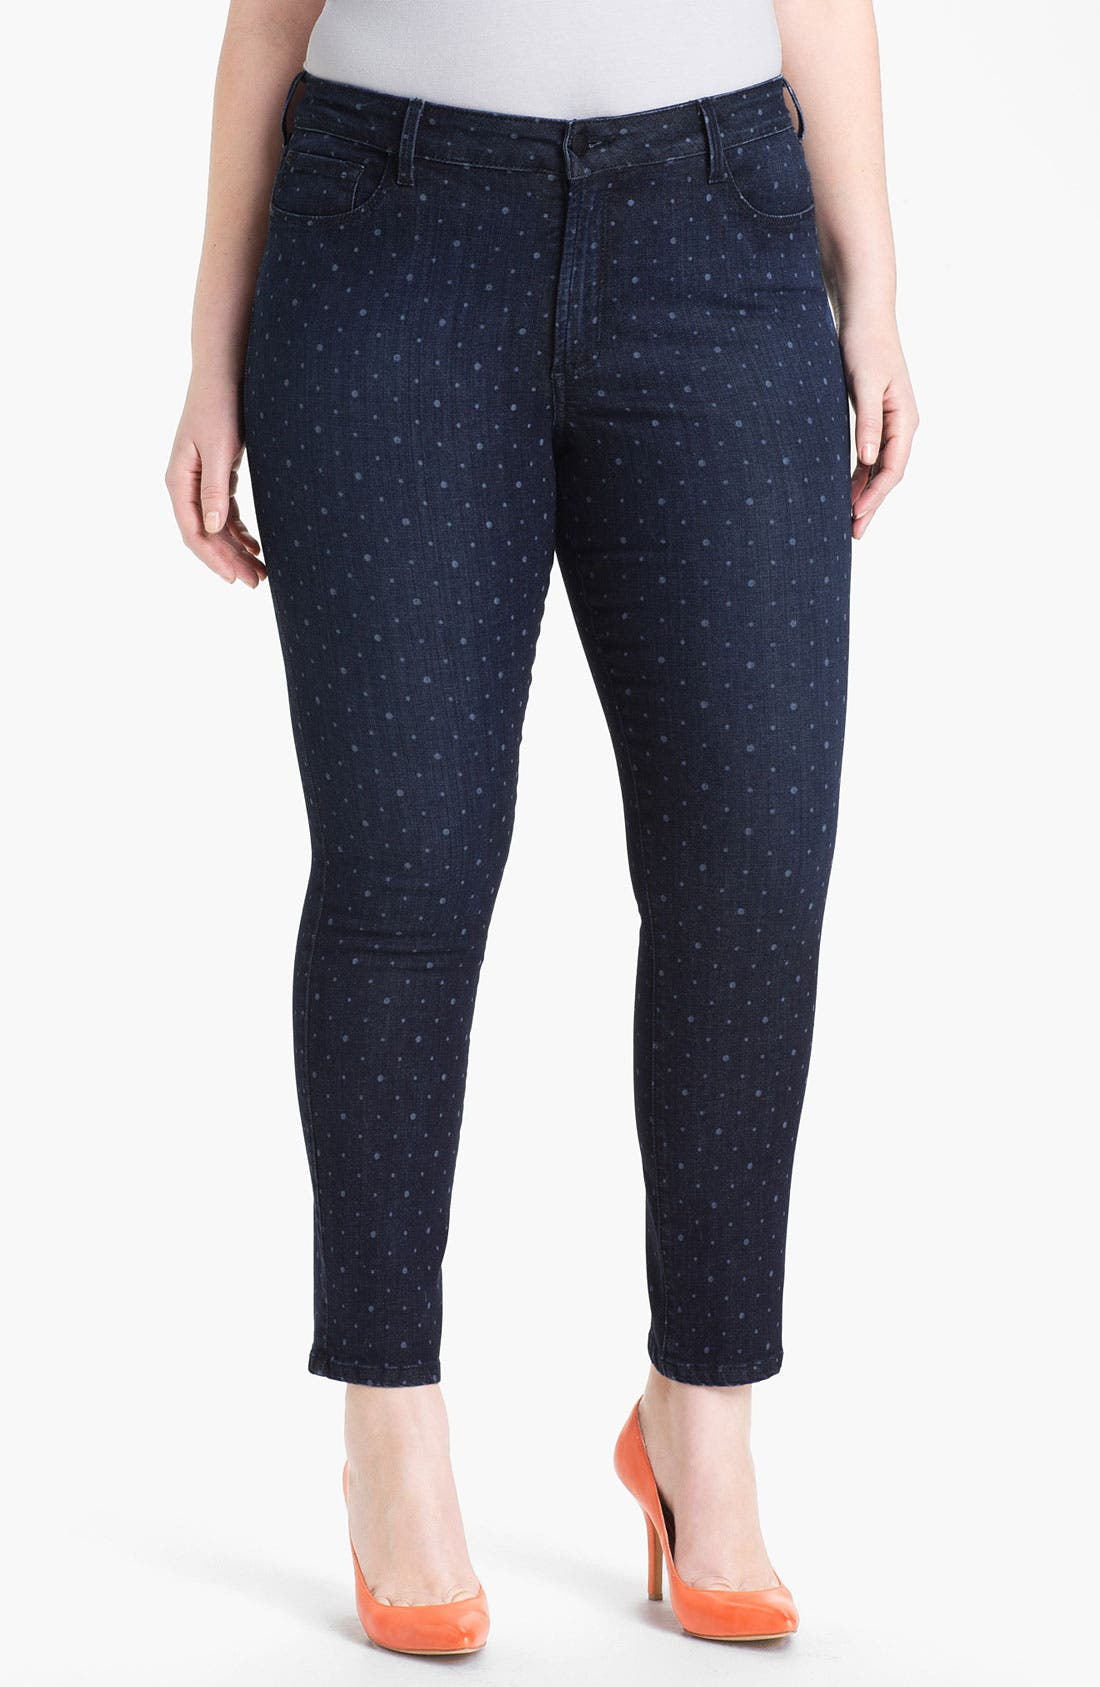 Alternate Image 1 Selected - NYDJ 'Sheri - Polka Dot' Print Skinny Ankle Jeans (Plus Size)